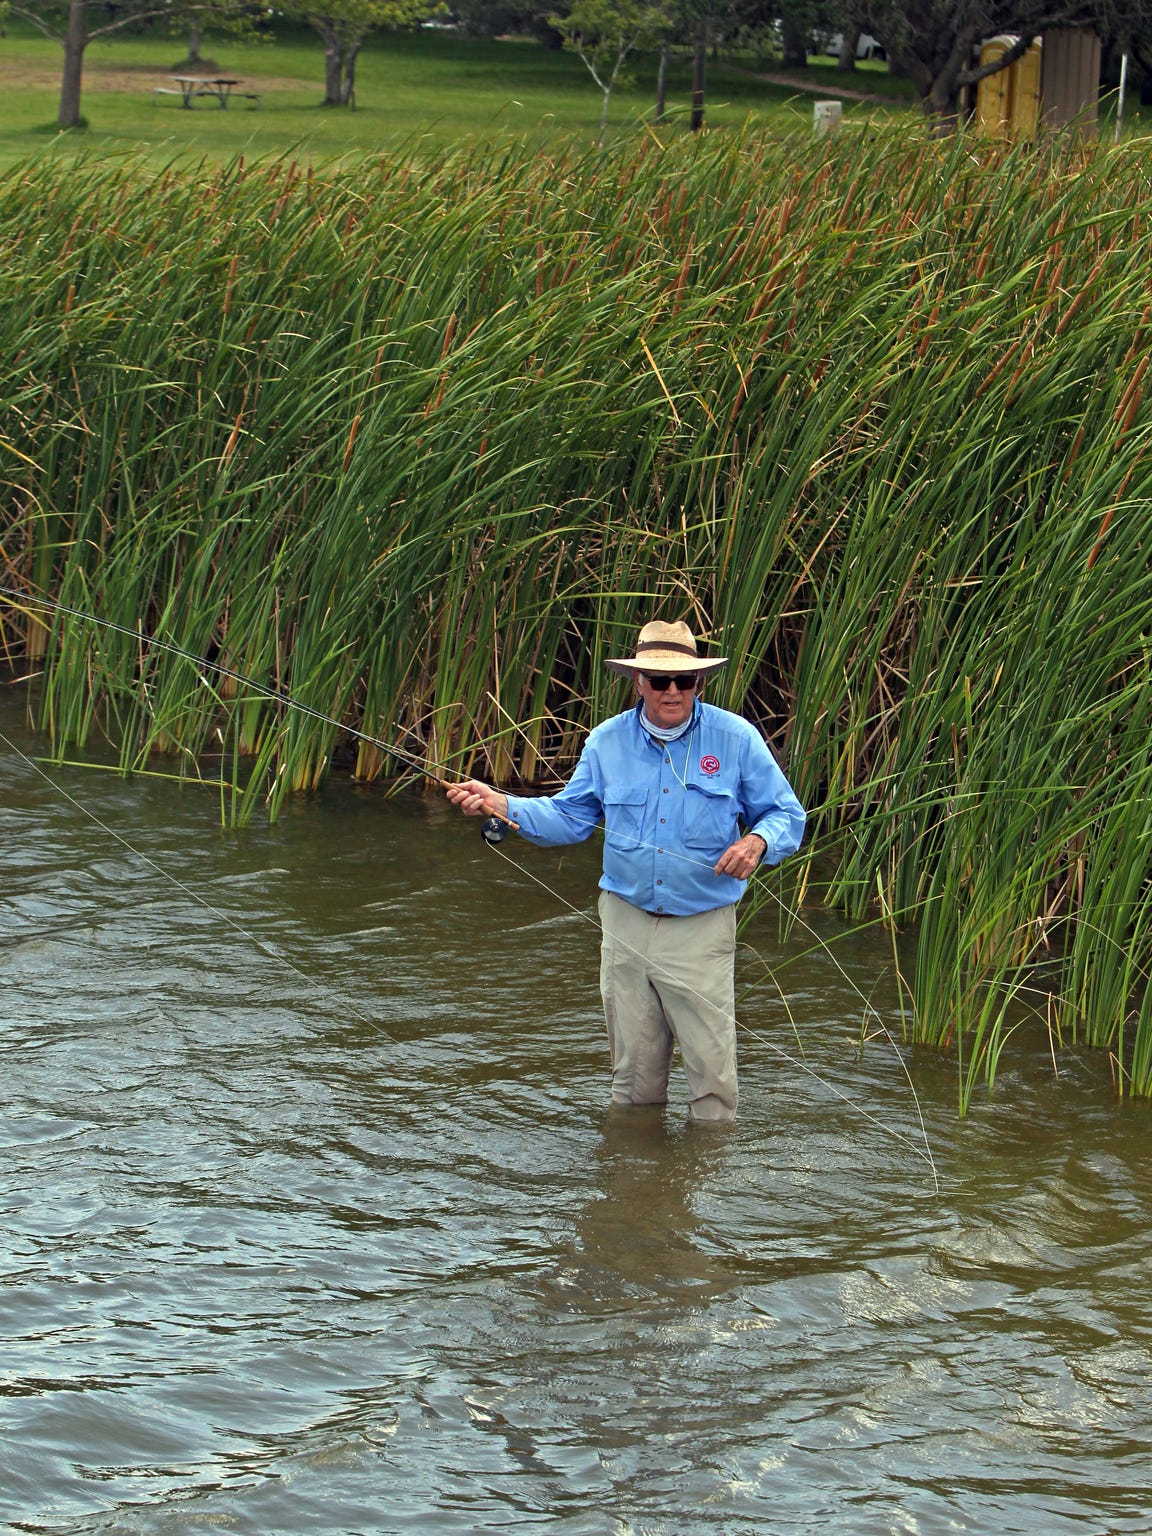 Cattails offer good cover for panfish along banks.